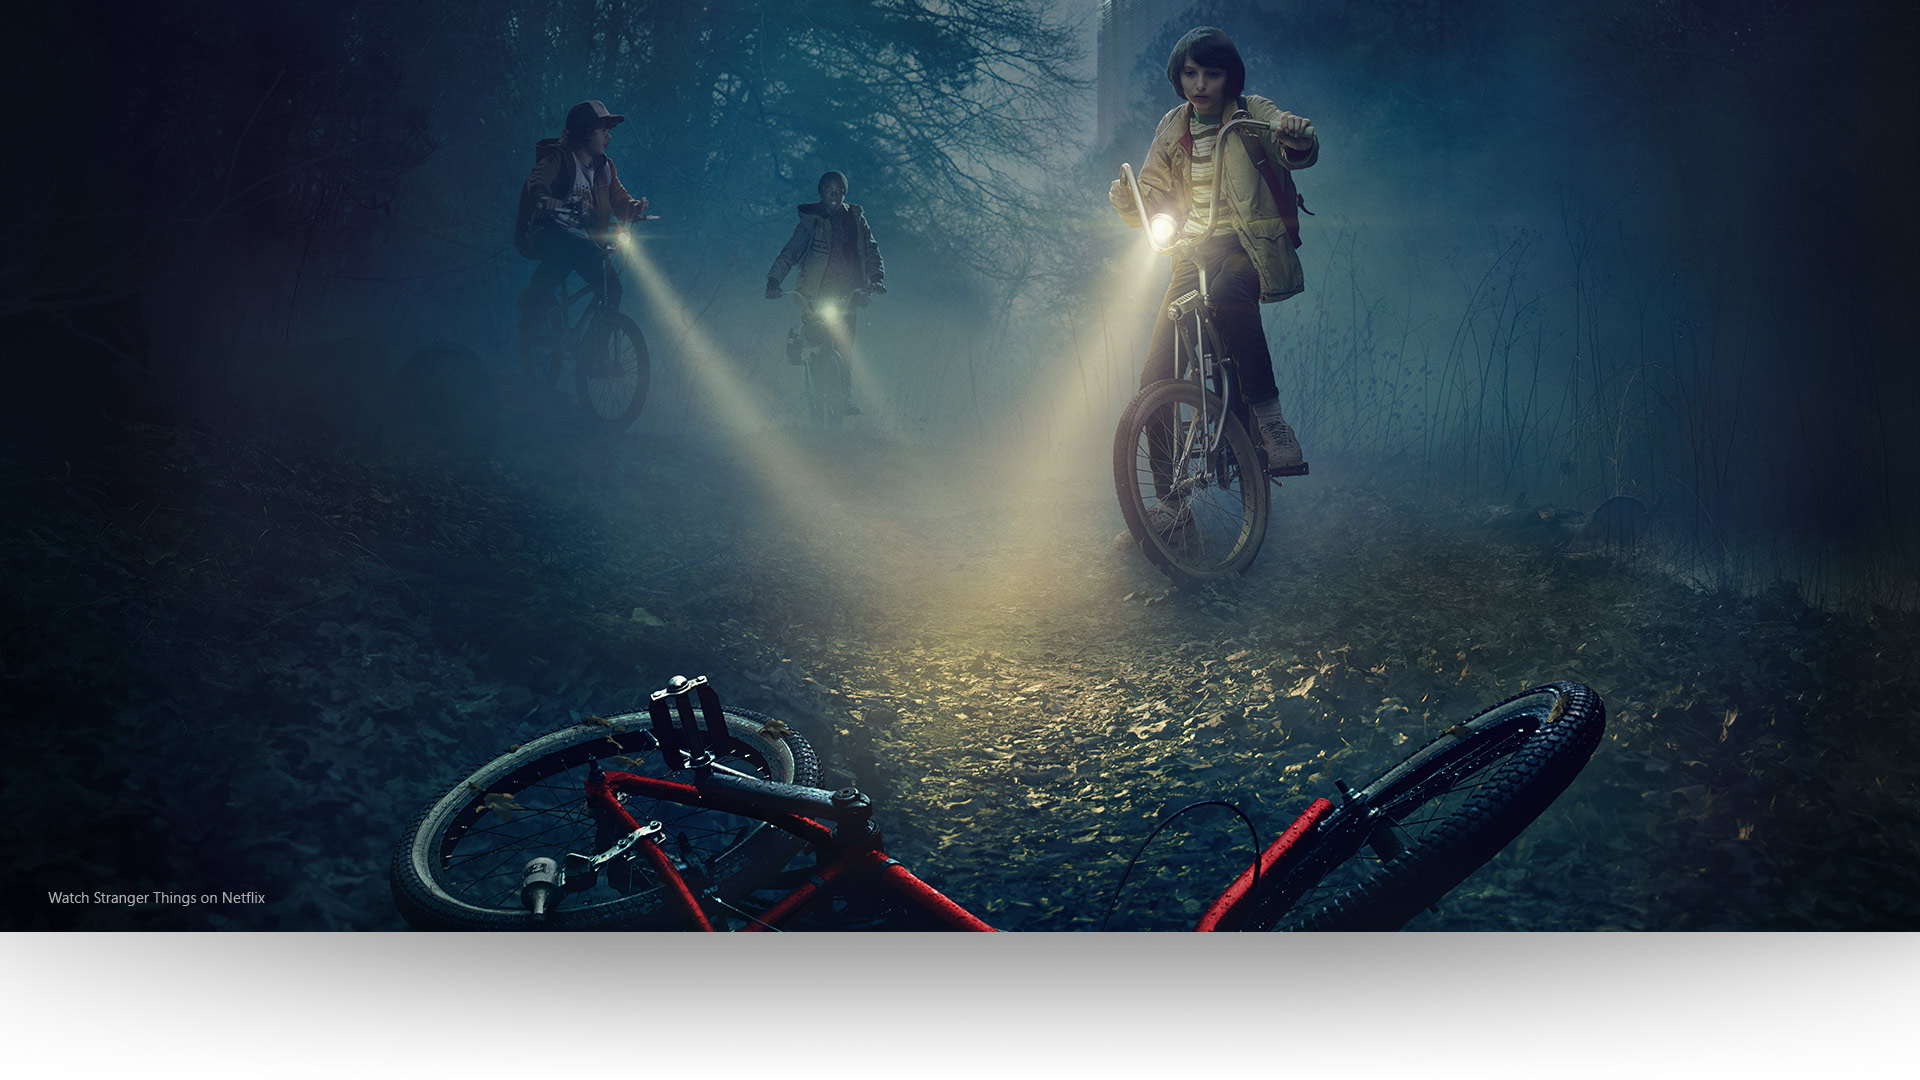 Stranger Things – Dustin, Lucas, and Mike shine their lights on an abandoned bicycle on a gloomy forest path.